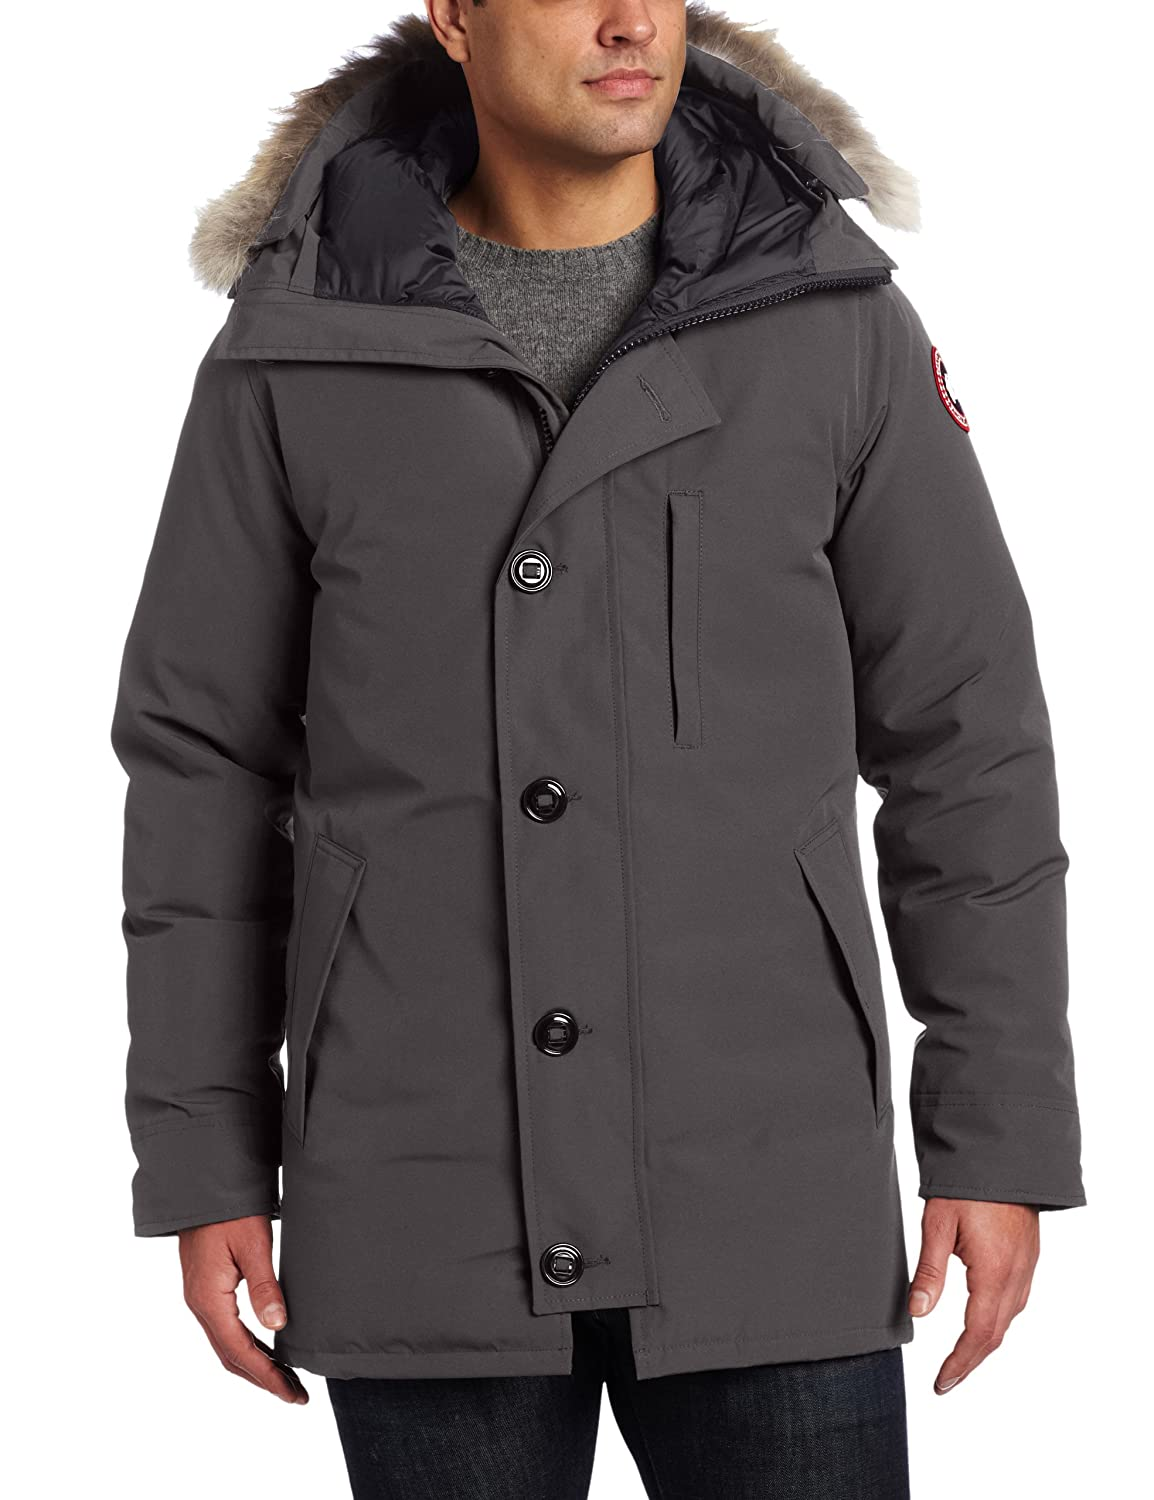 Canada Goose Men's Jackets, Parkas & Coats. Canadian outerwear manufacturer Canada Goose is a long-popular label among Arctic explorers, skiers, and mountaineers. Designed to withstand extreme cold-weather conditions, Canada Goose jackets and coats are made from high-quality materials and constructed with impeccable craftsmanship.